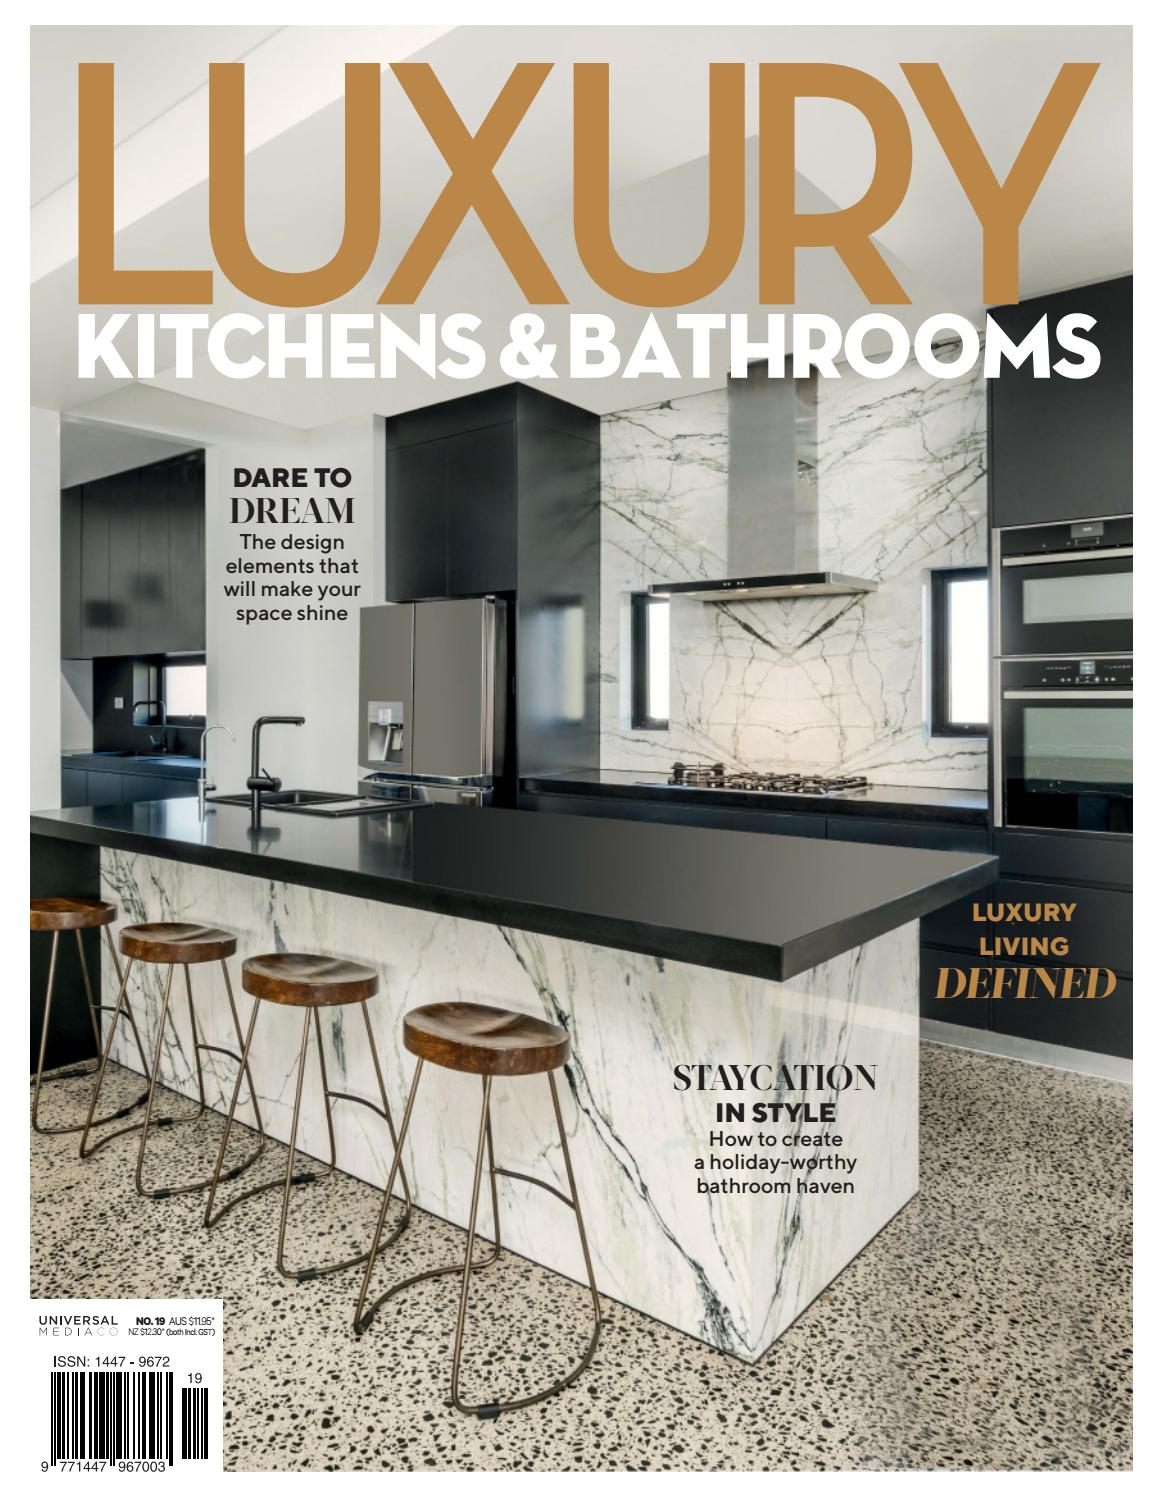 Luxury Kitchens & Bathrooms 20 by Universal Media Co   issuu